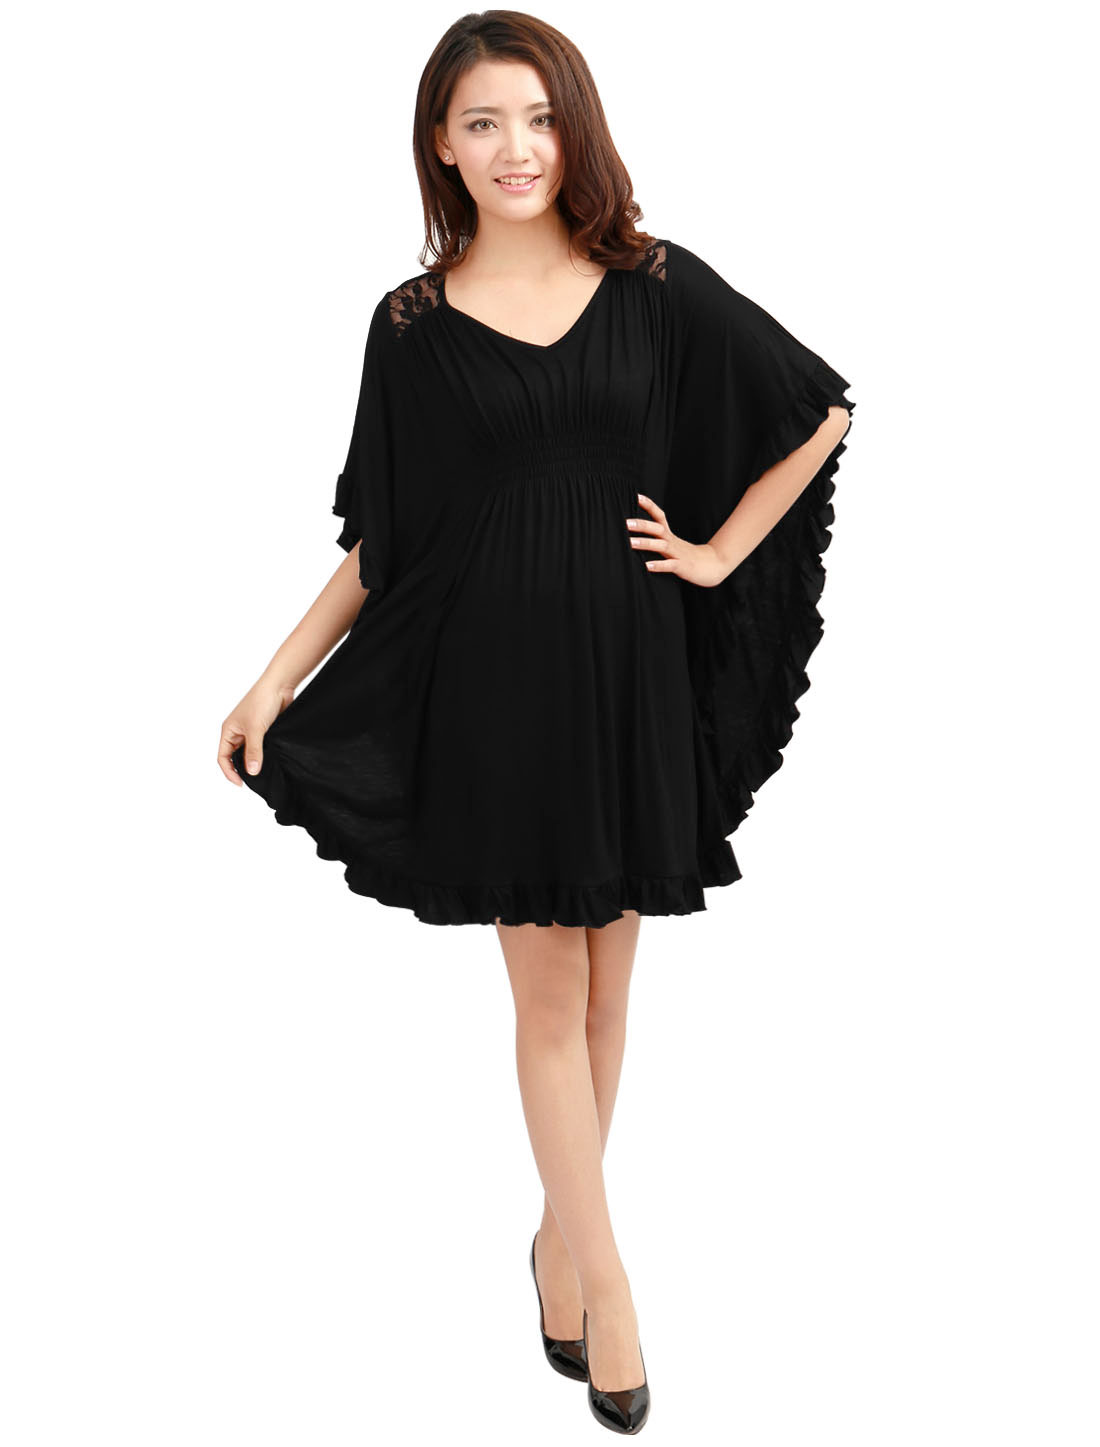 Pullover Stretchy Elastic Waist Ruffled Hem Black Mini Dress for Lady XL